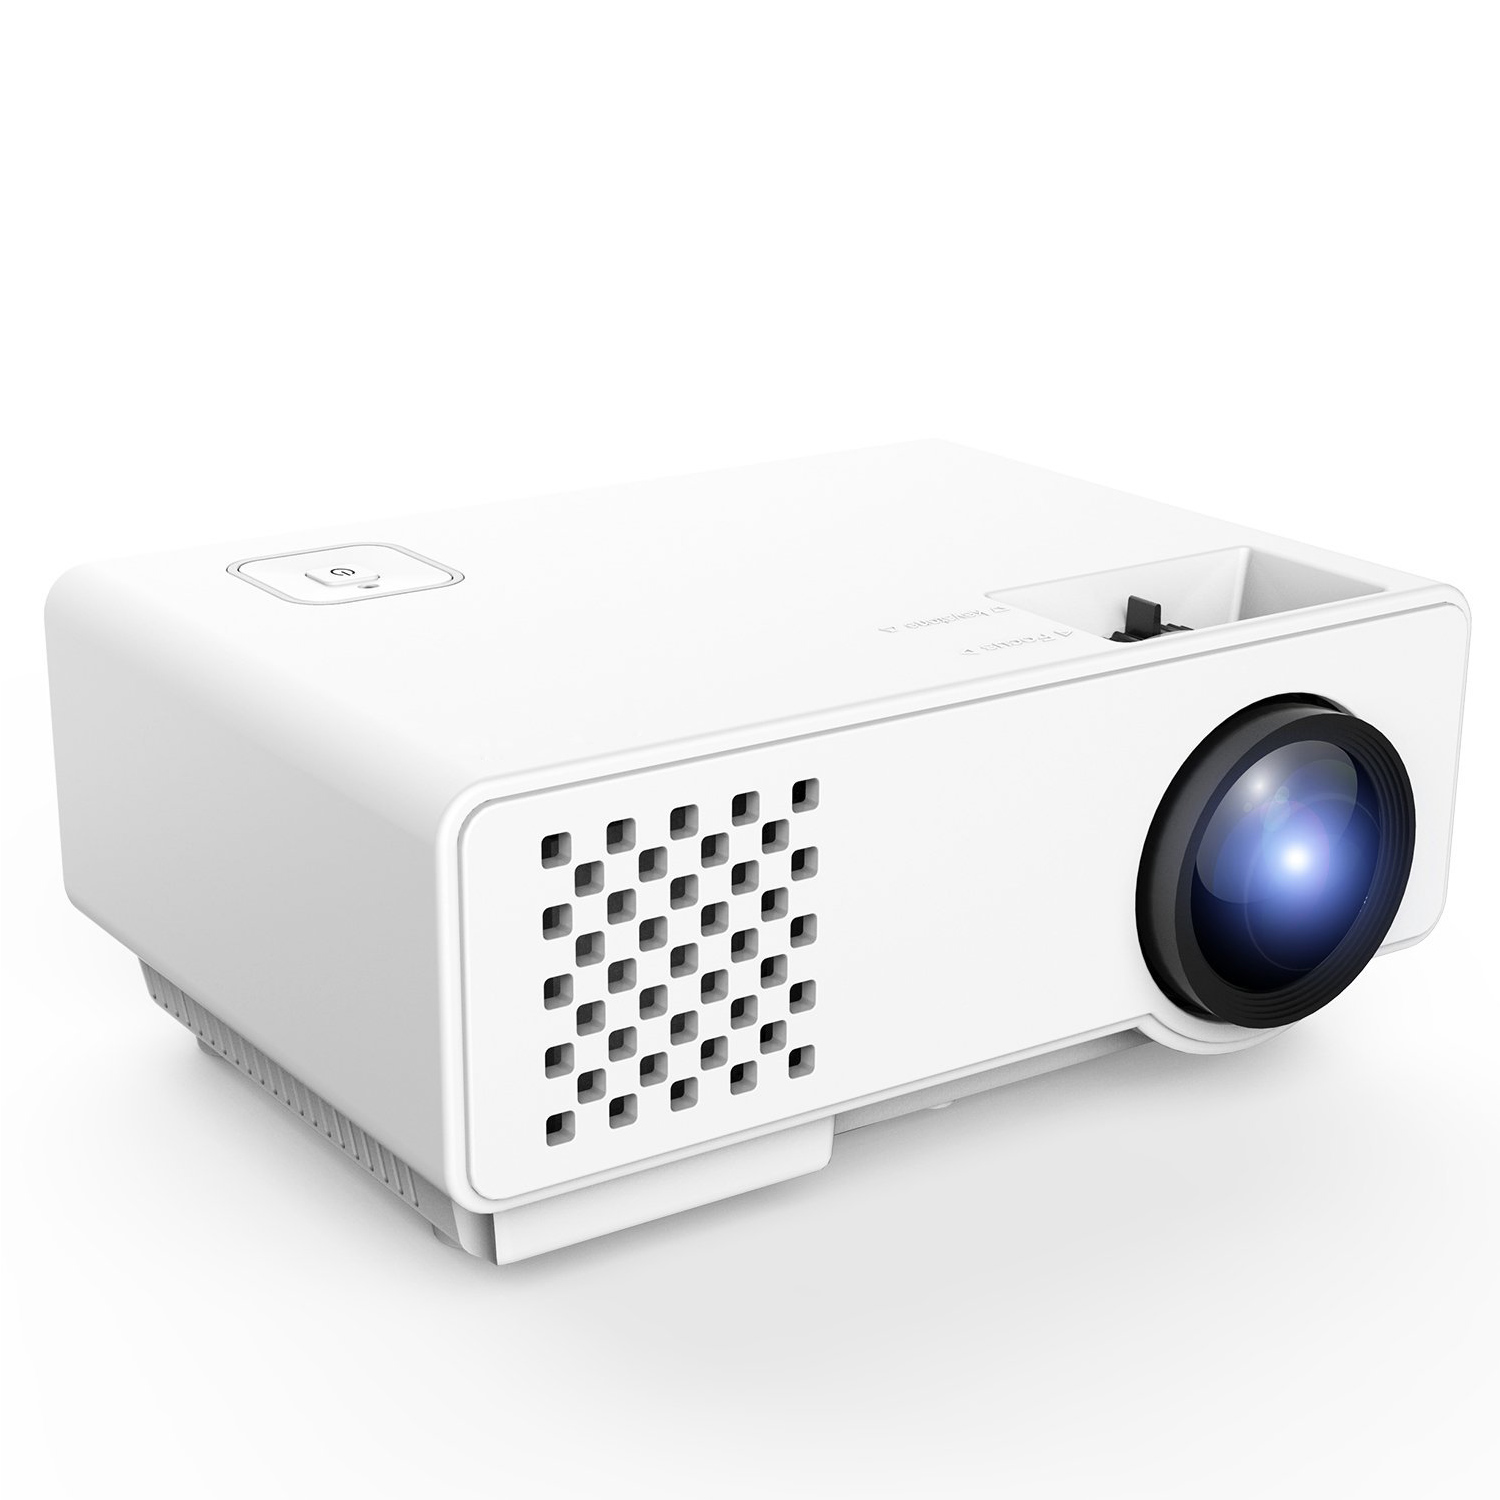 DBPOWER RD-810 1200 Lumens LED Portable Projector, Multimedia Home Theater Video Projector Supporting 1080